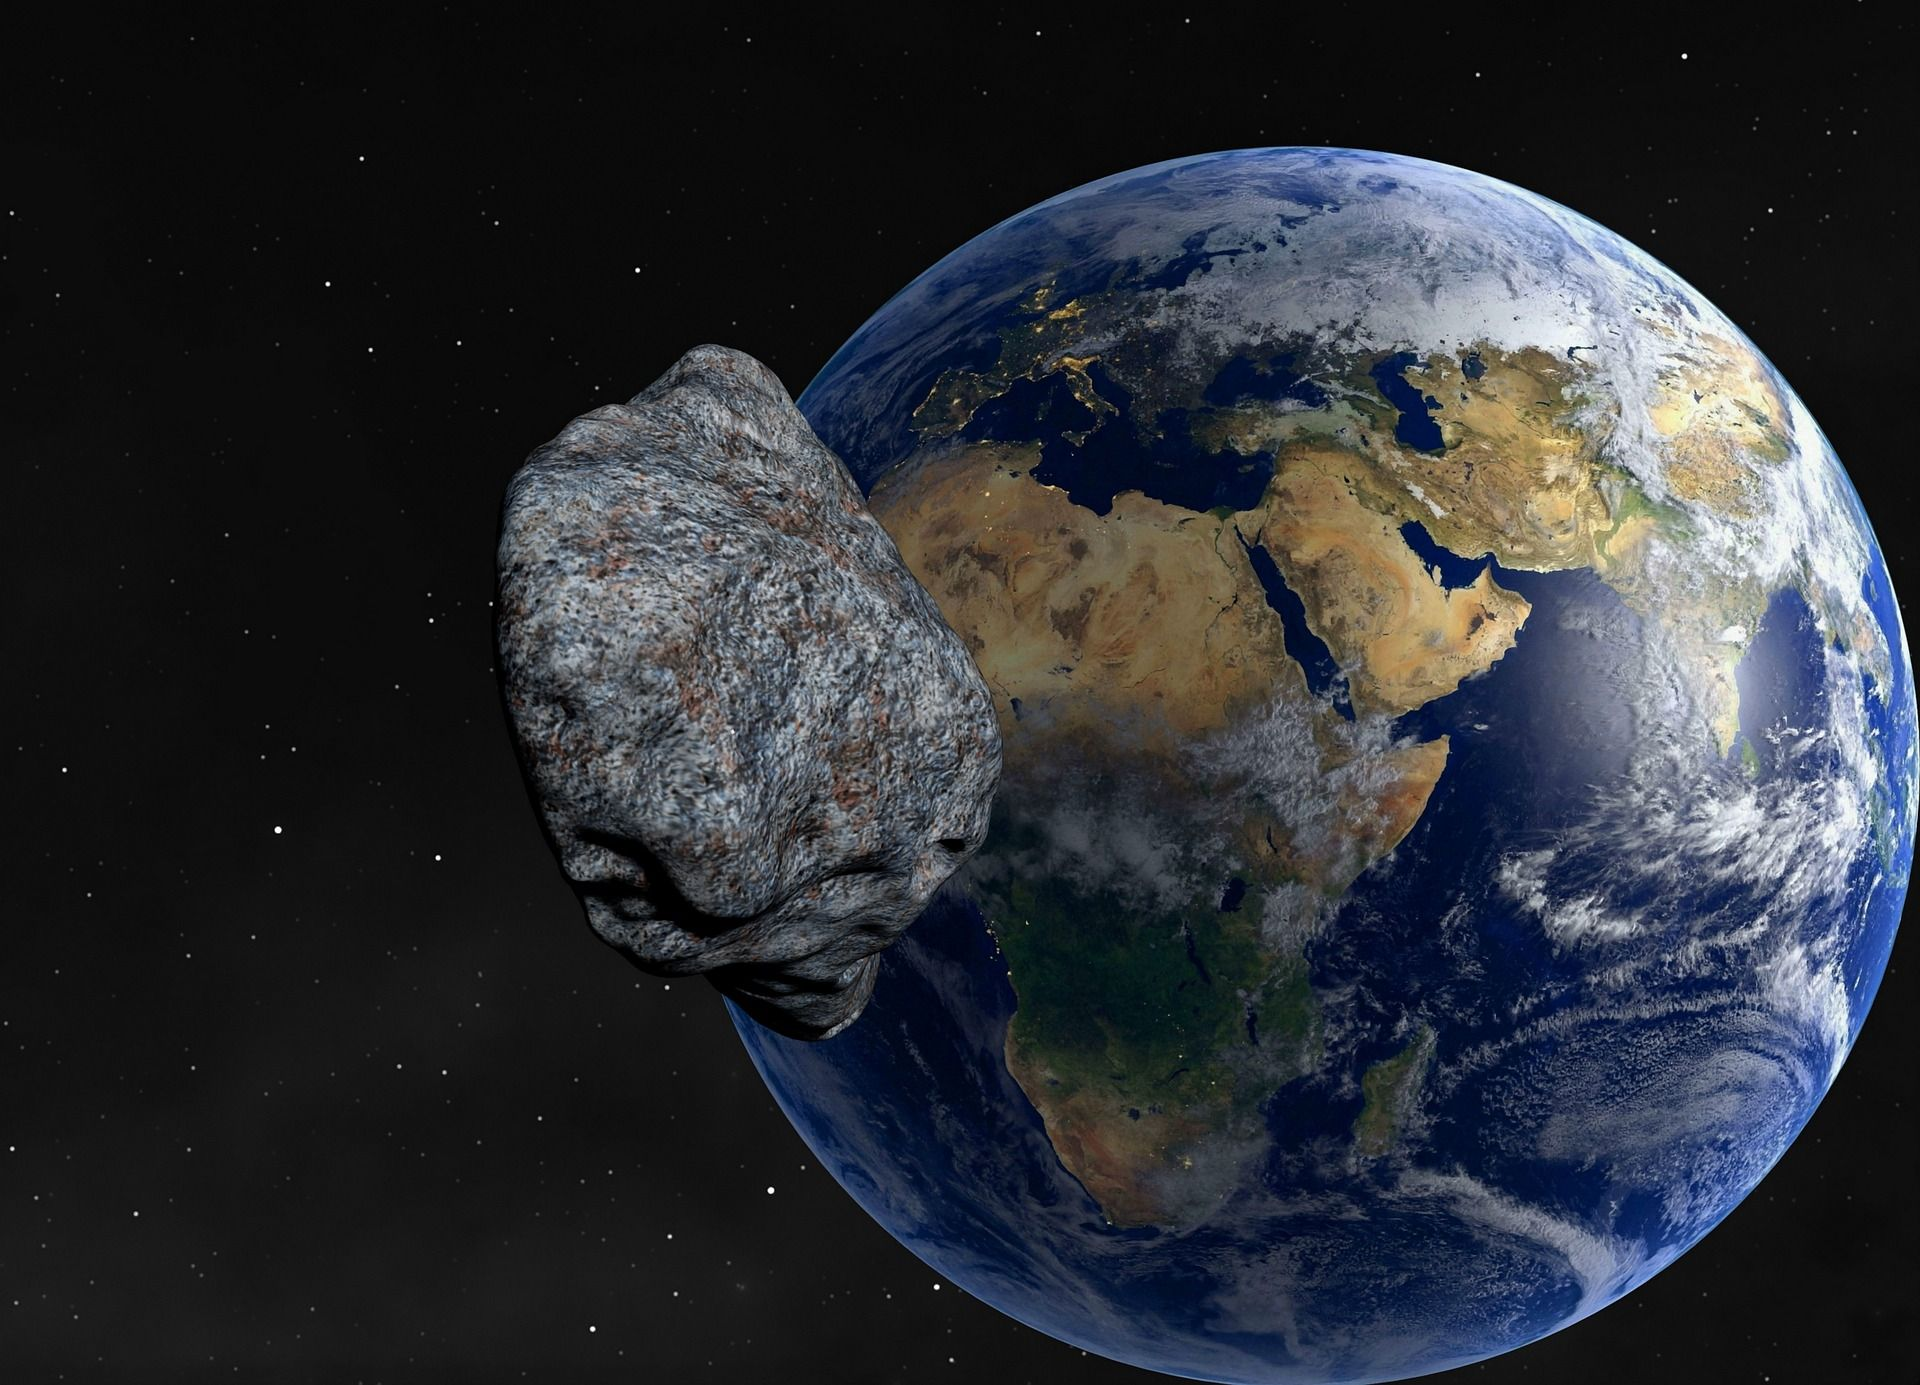 A near-Earth asteroid approaches our planet.